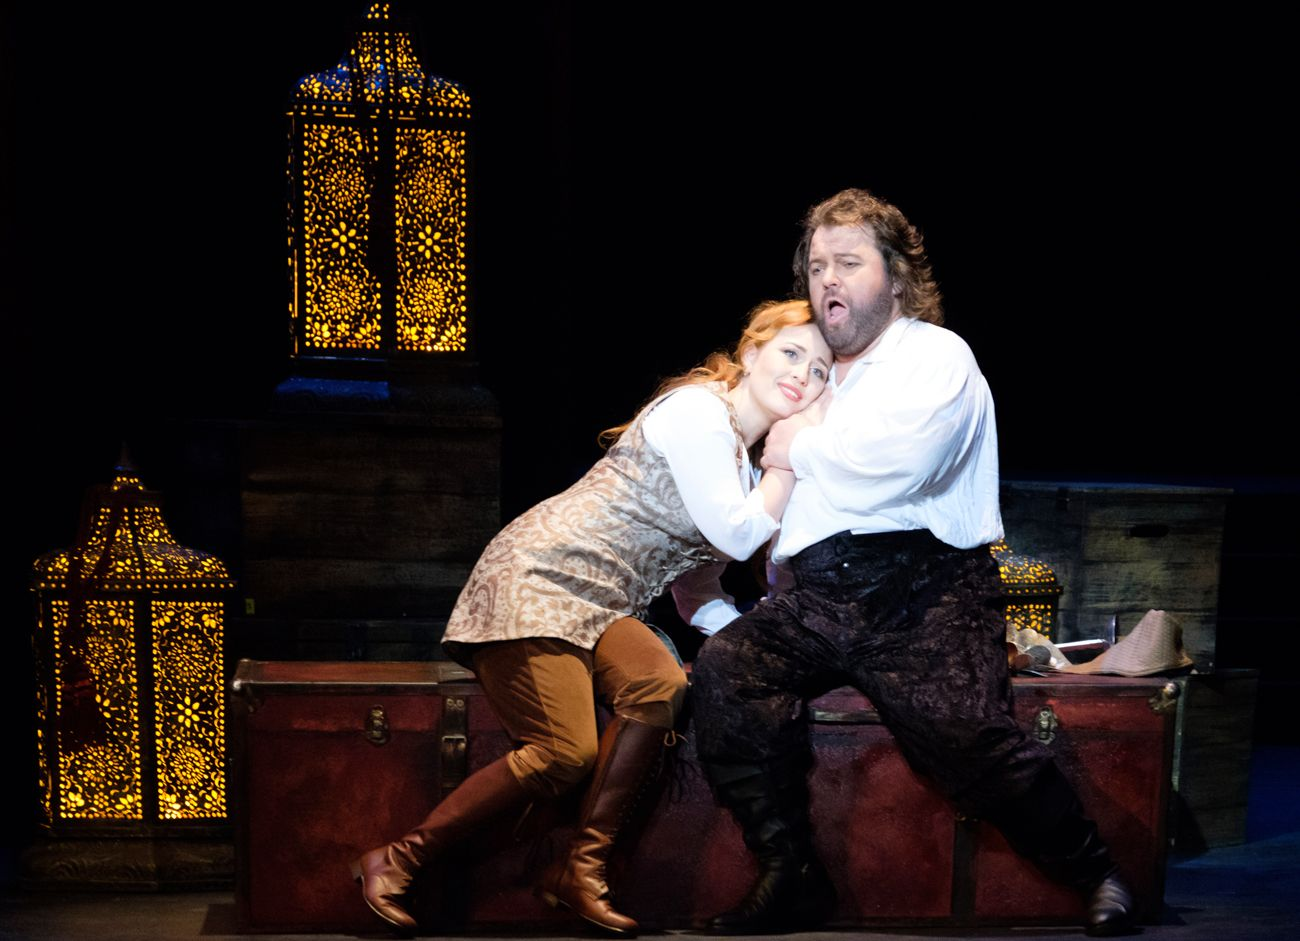 Elena Stikhina as Desdemona and Kristian Benedikt as Otello COPYRIGHT Ópera de Bellas Artes - Ana Lourdes Herrera